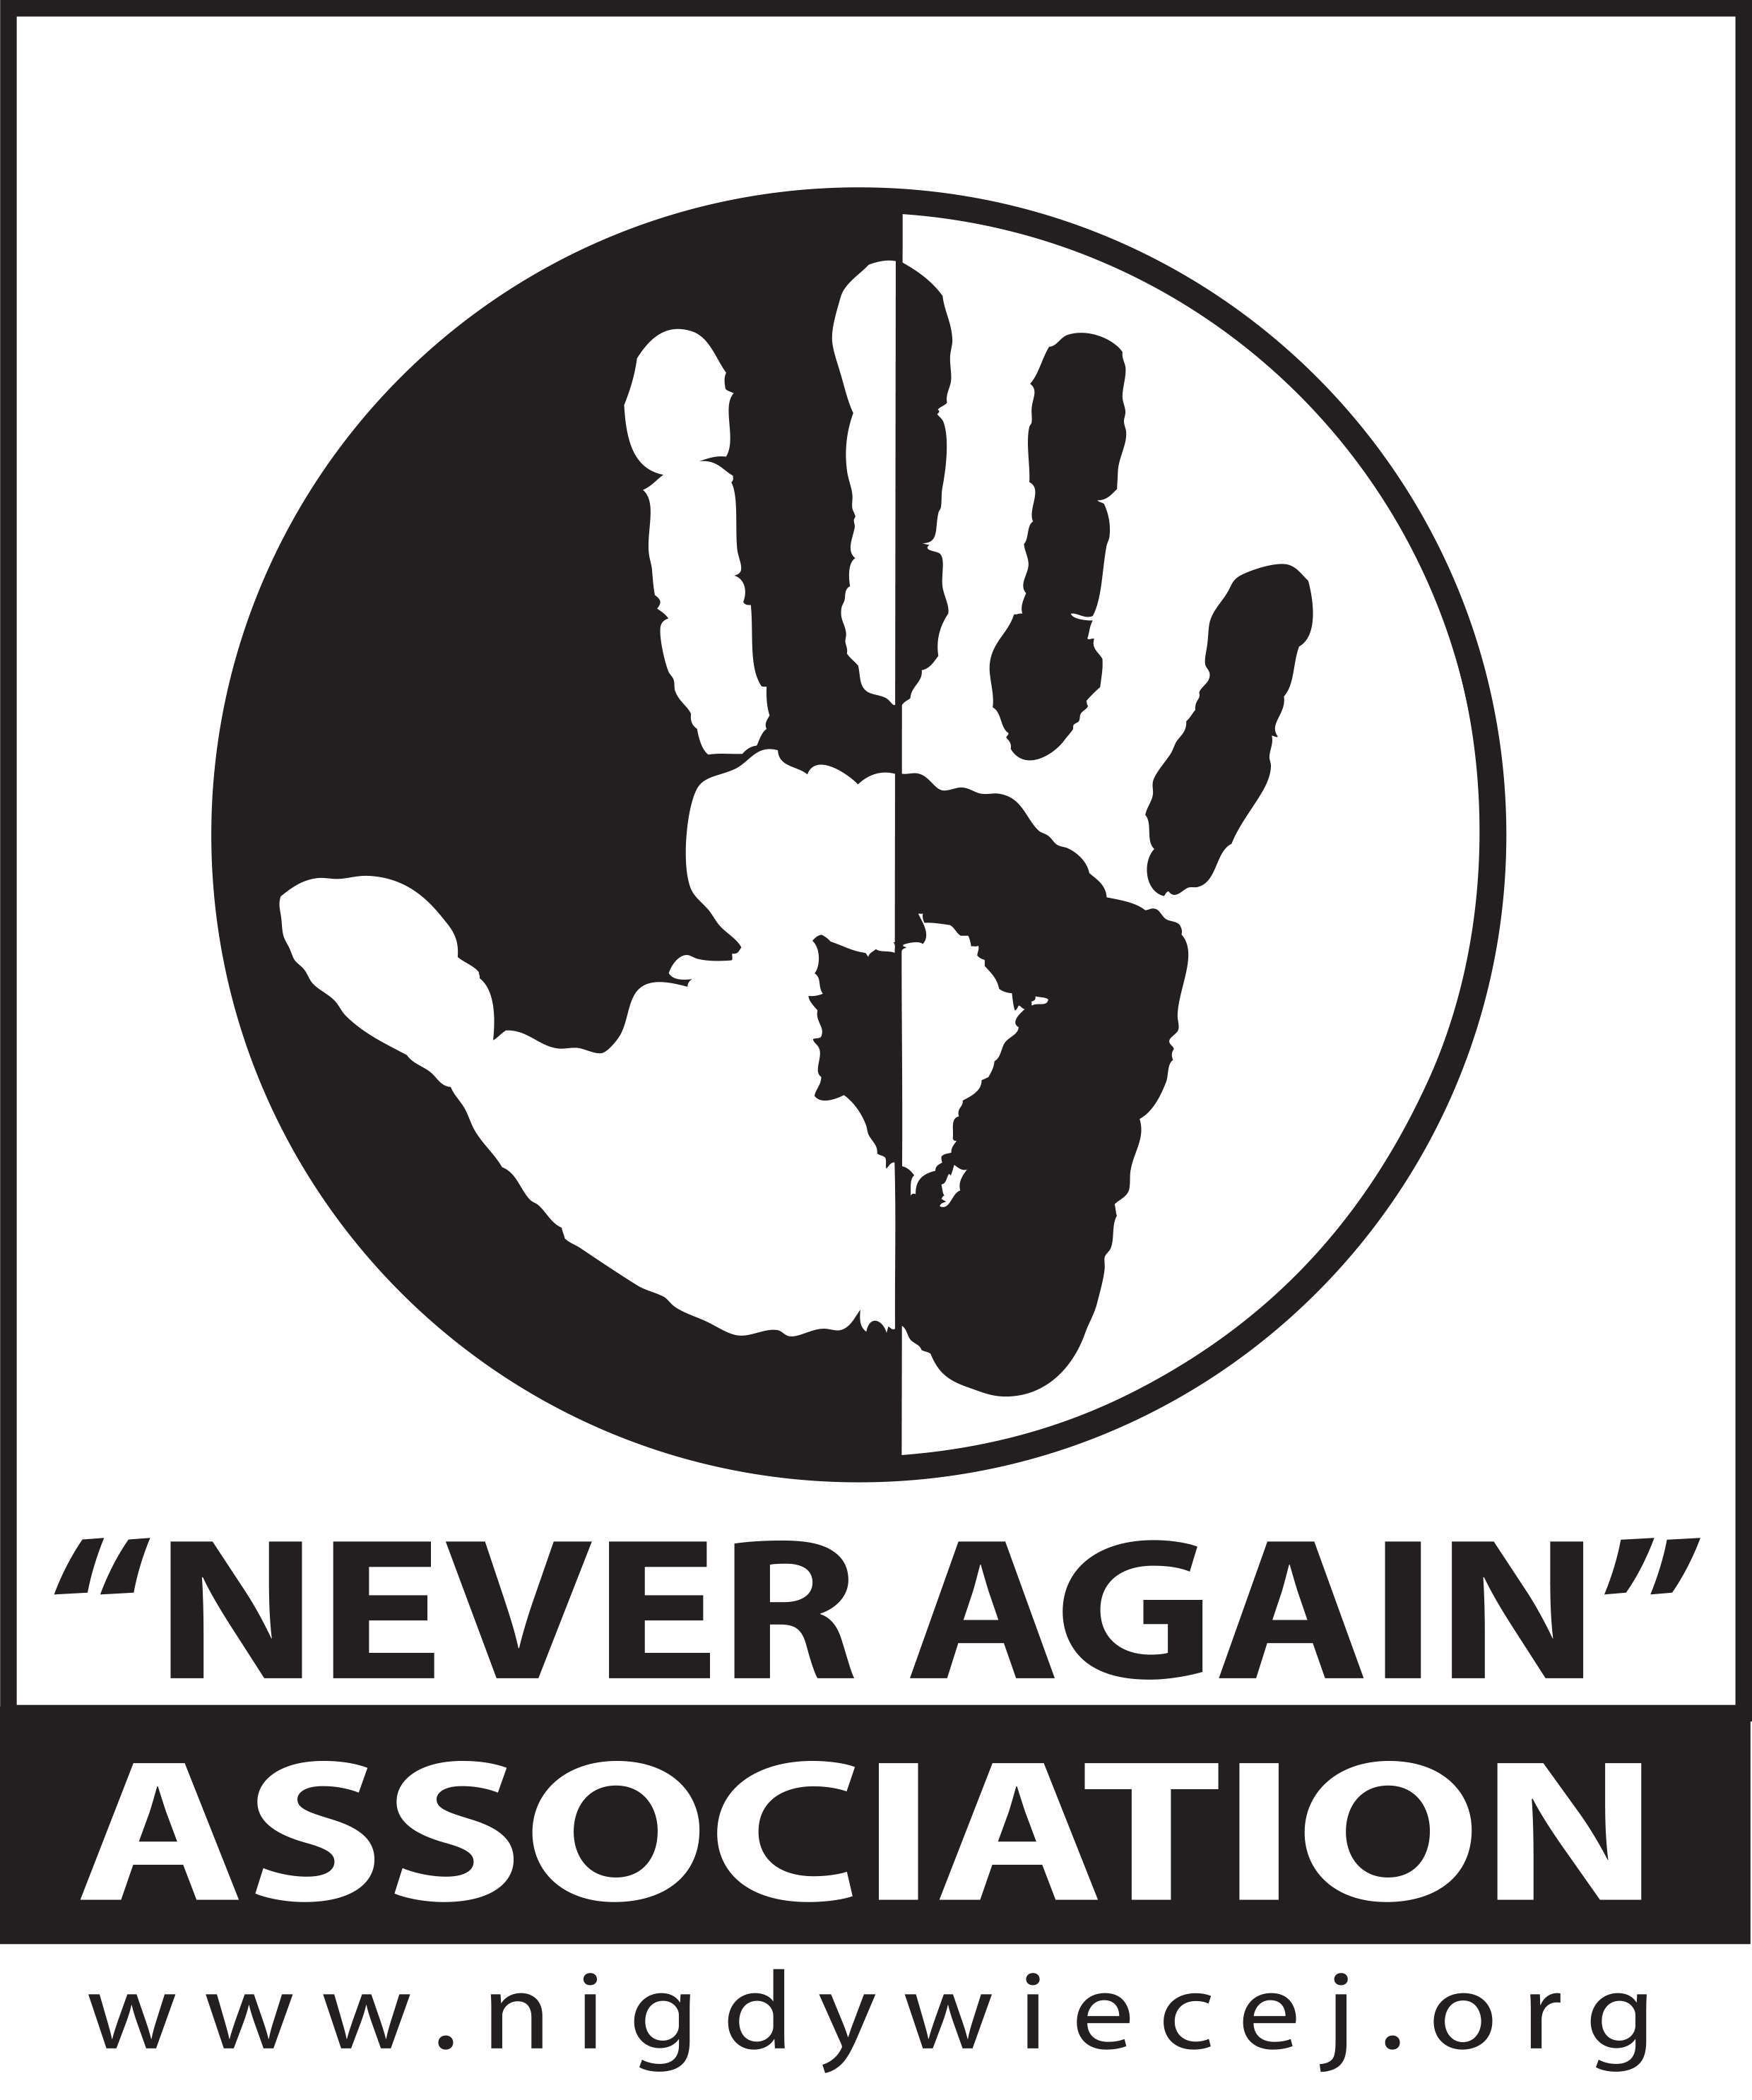 Never Again Association